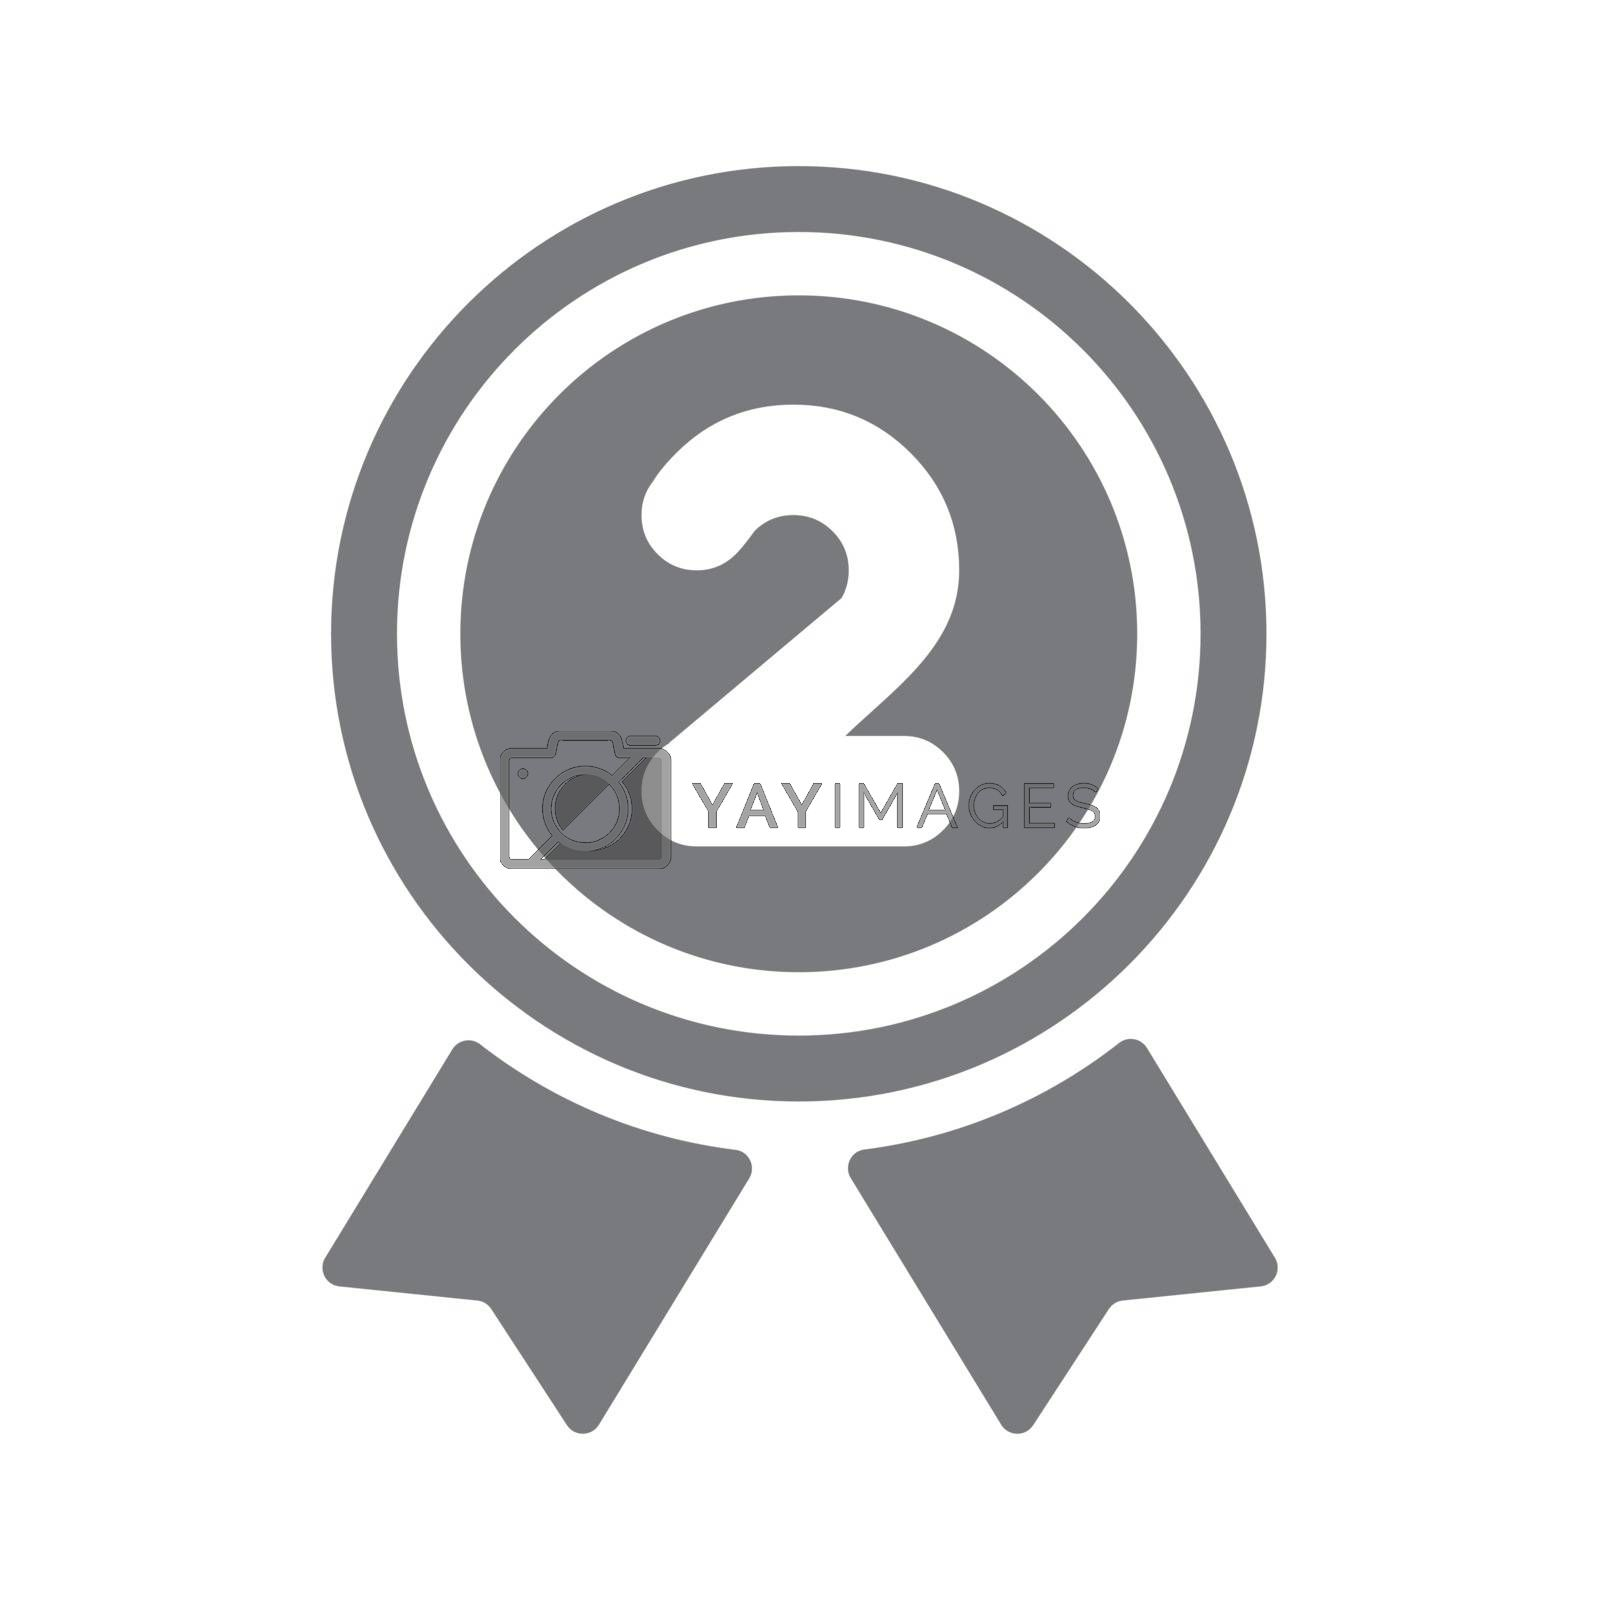 ranking medal icon illustration. 2nd place (silver). by barks